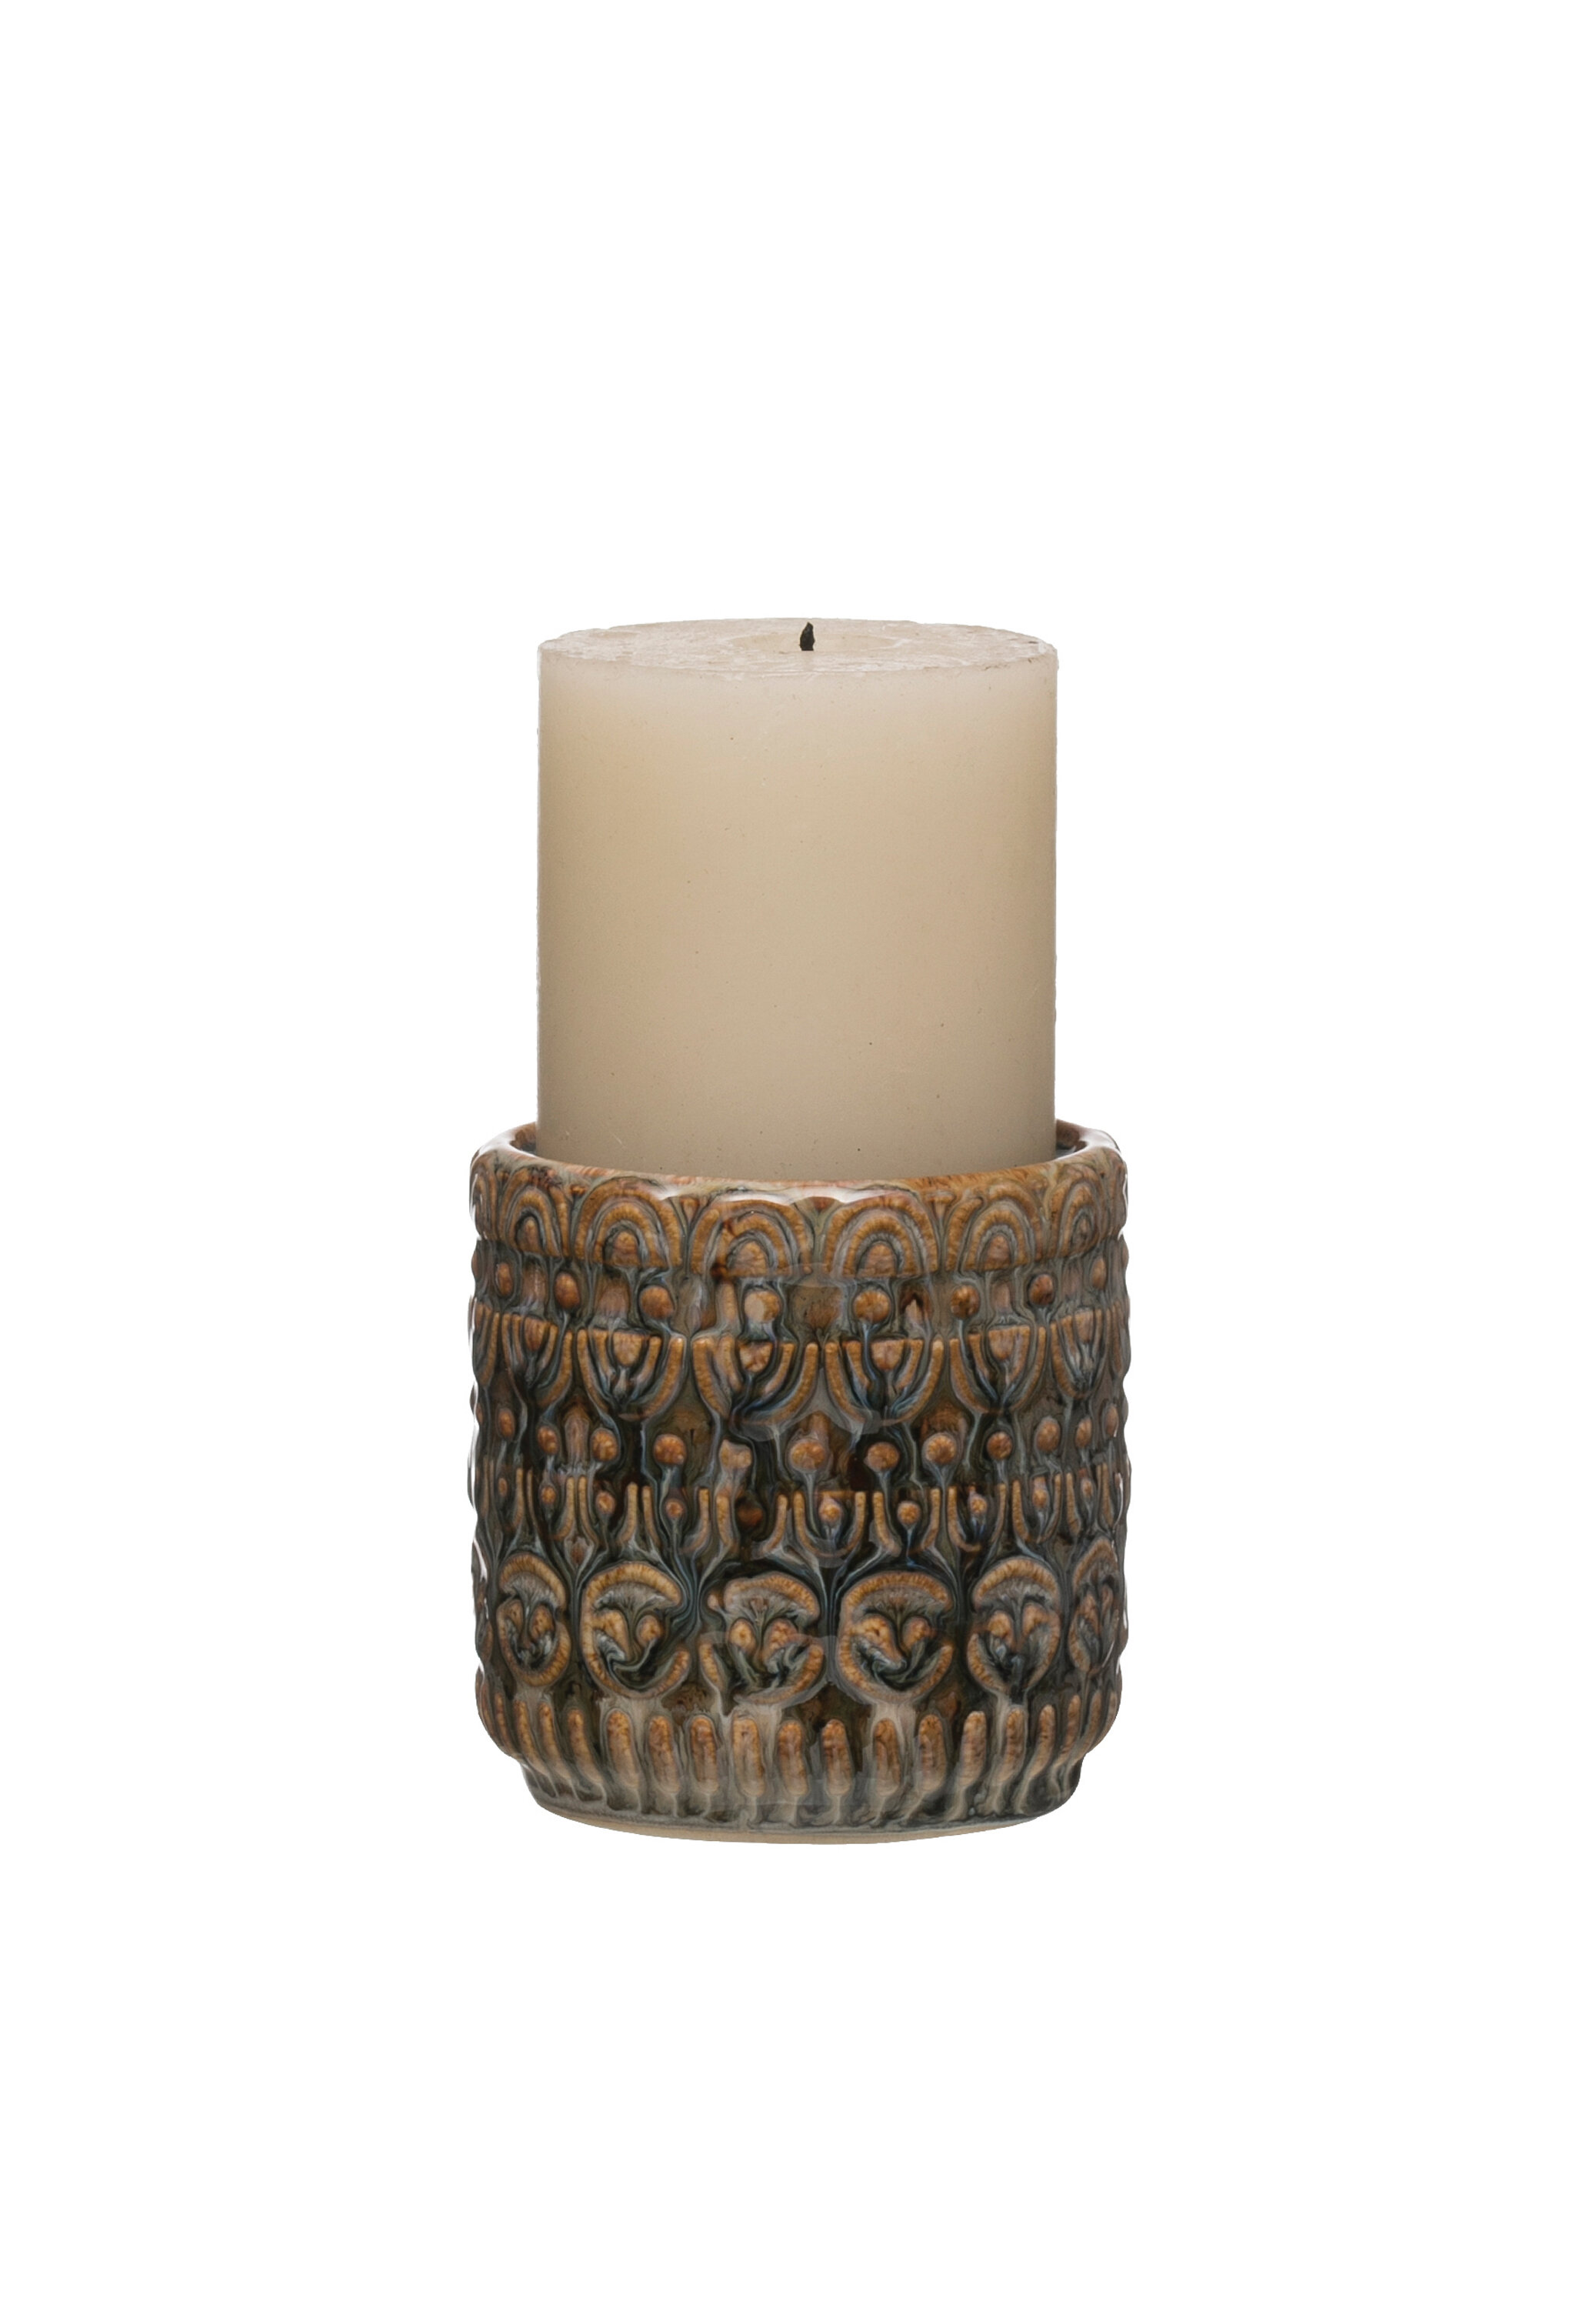 Bloomsbury Market 4 Ceramic Tabletop Candlestick Wayfair